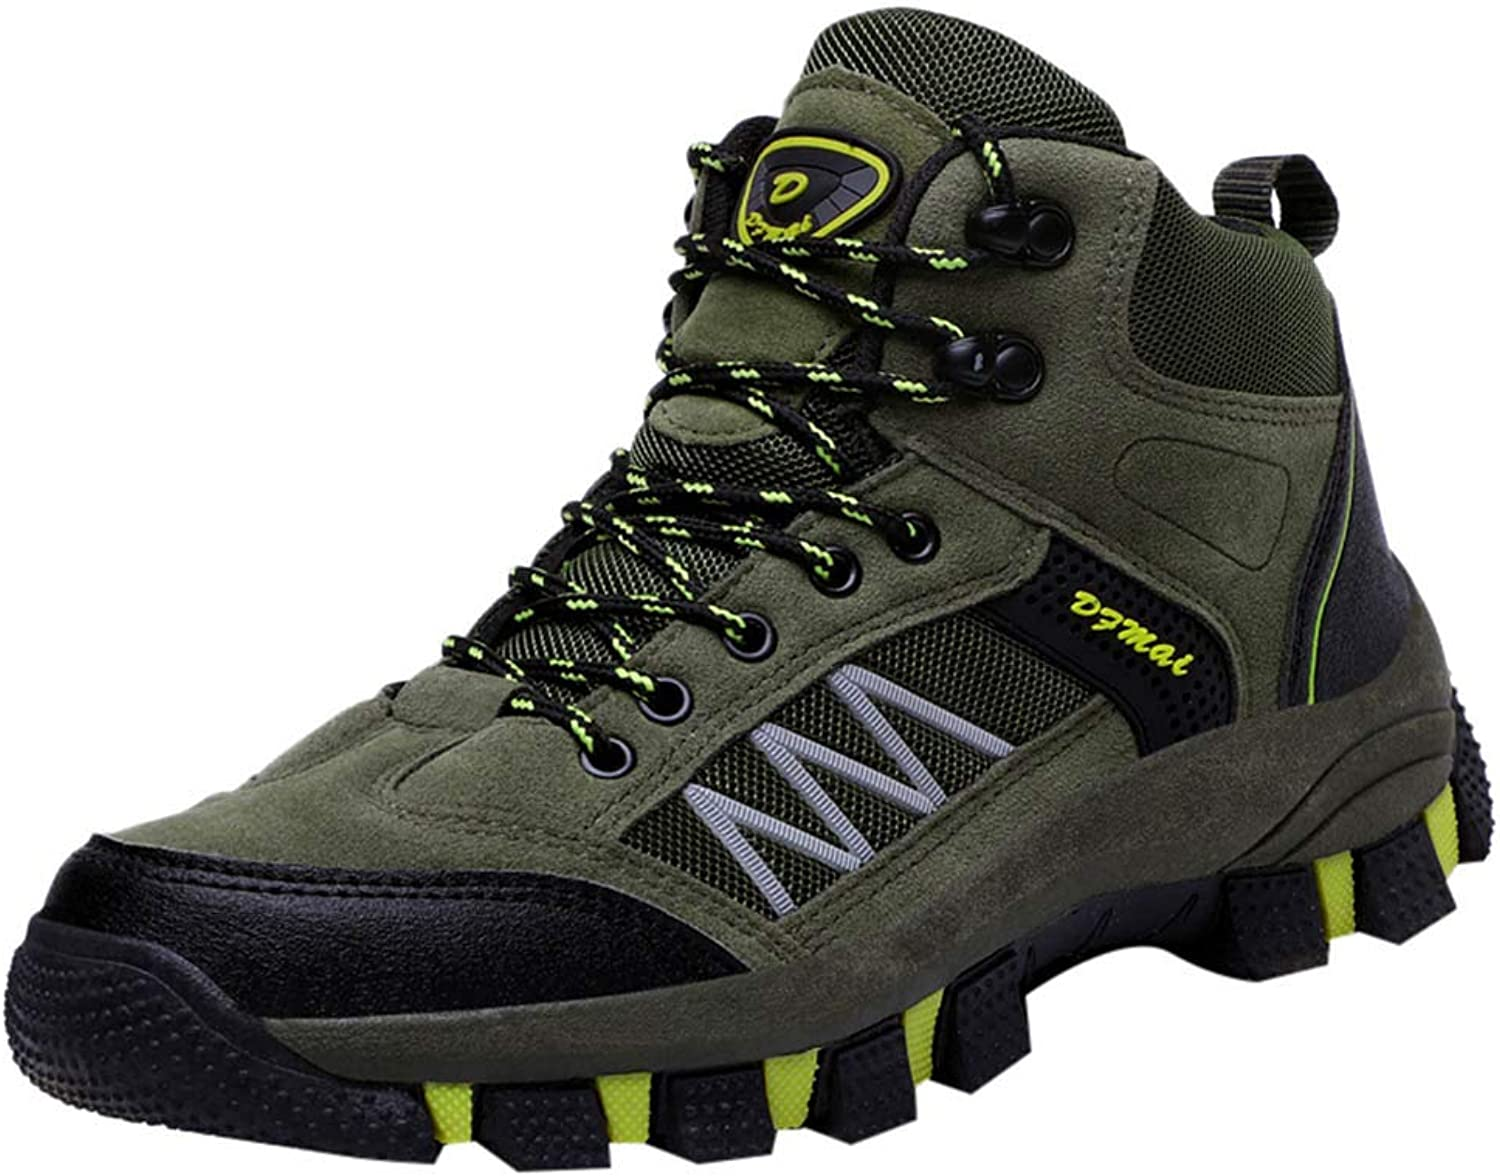 Men's Hiking shoes, Outdoor Breathable Leather Cozy Mountaining shoes for Women